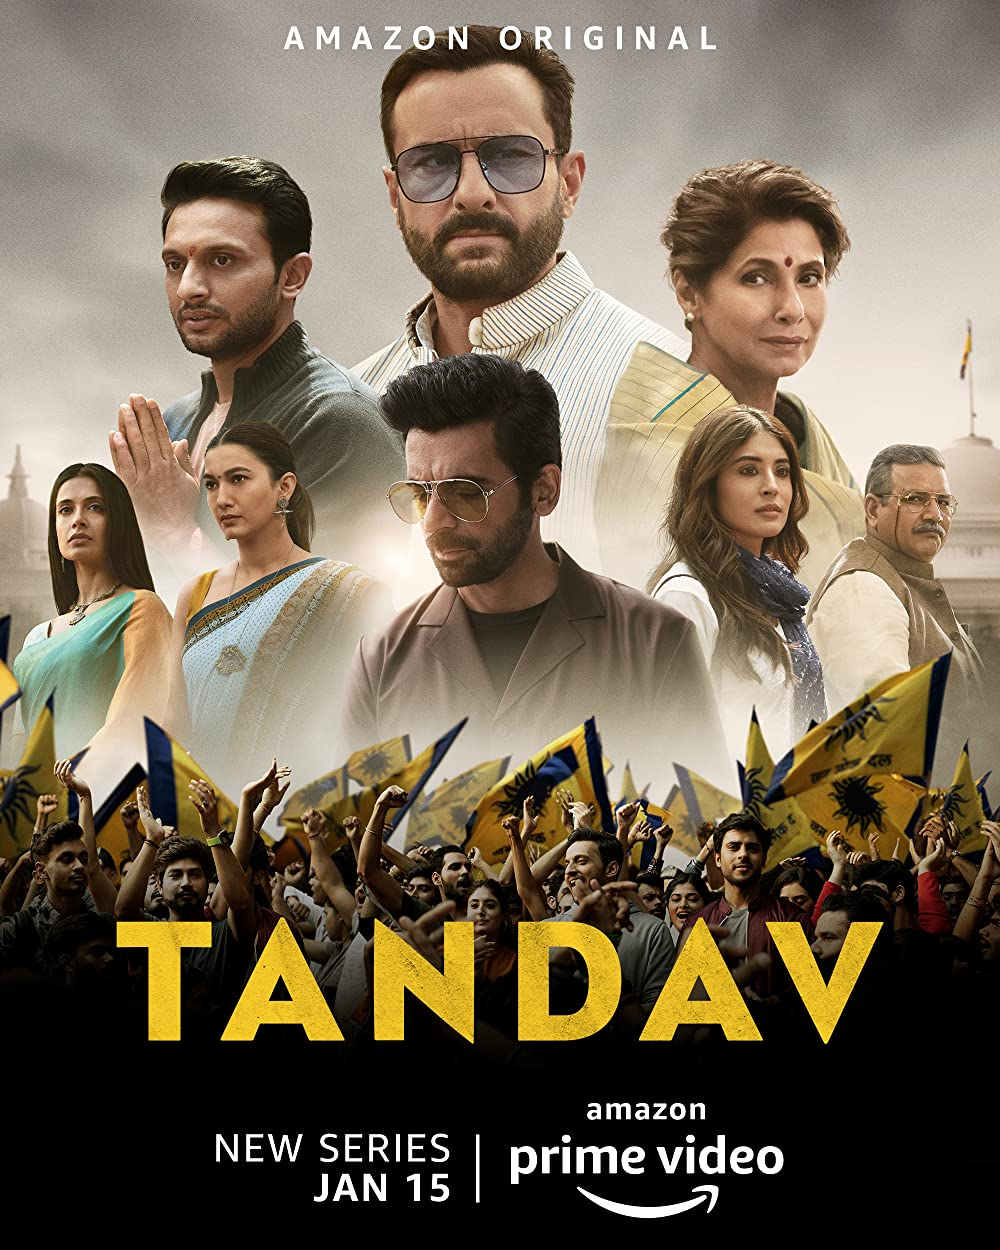 Tandav S01 2021 Hindi Amazon Original Complete Web Series 960MB HDRip Download